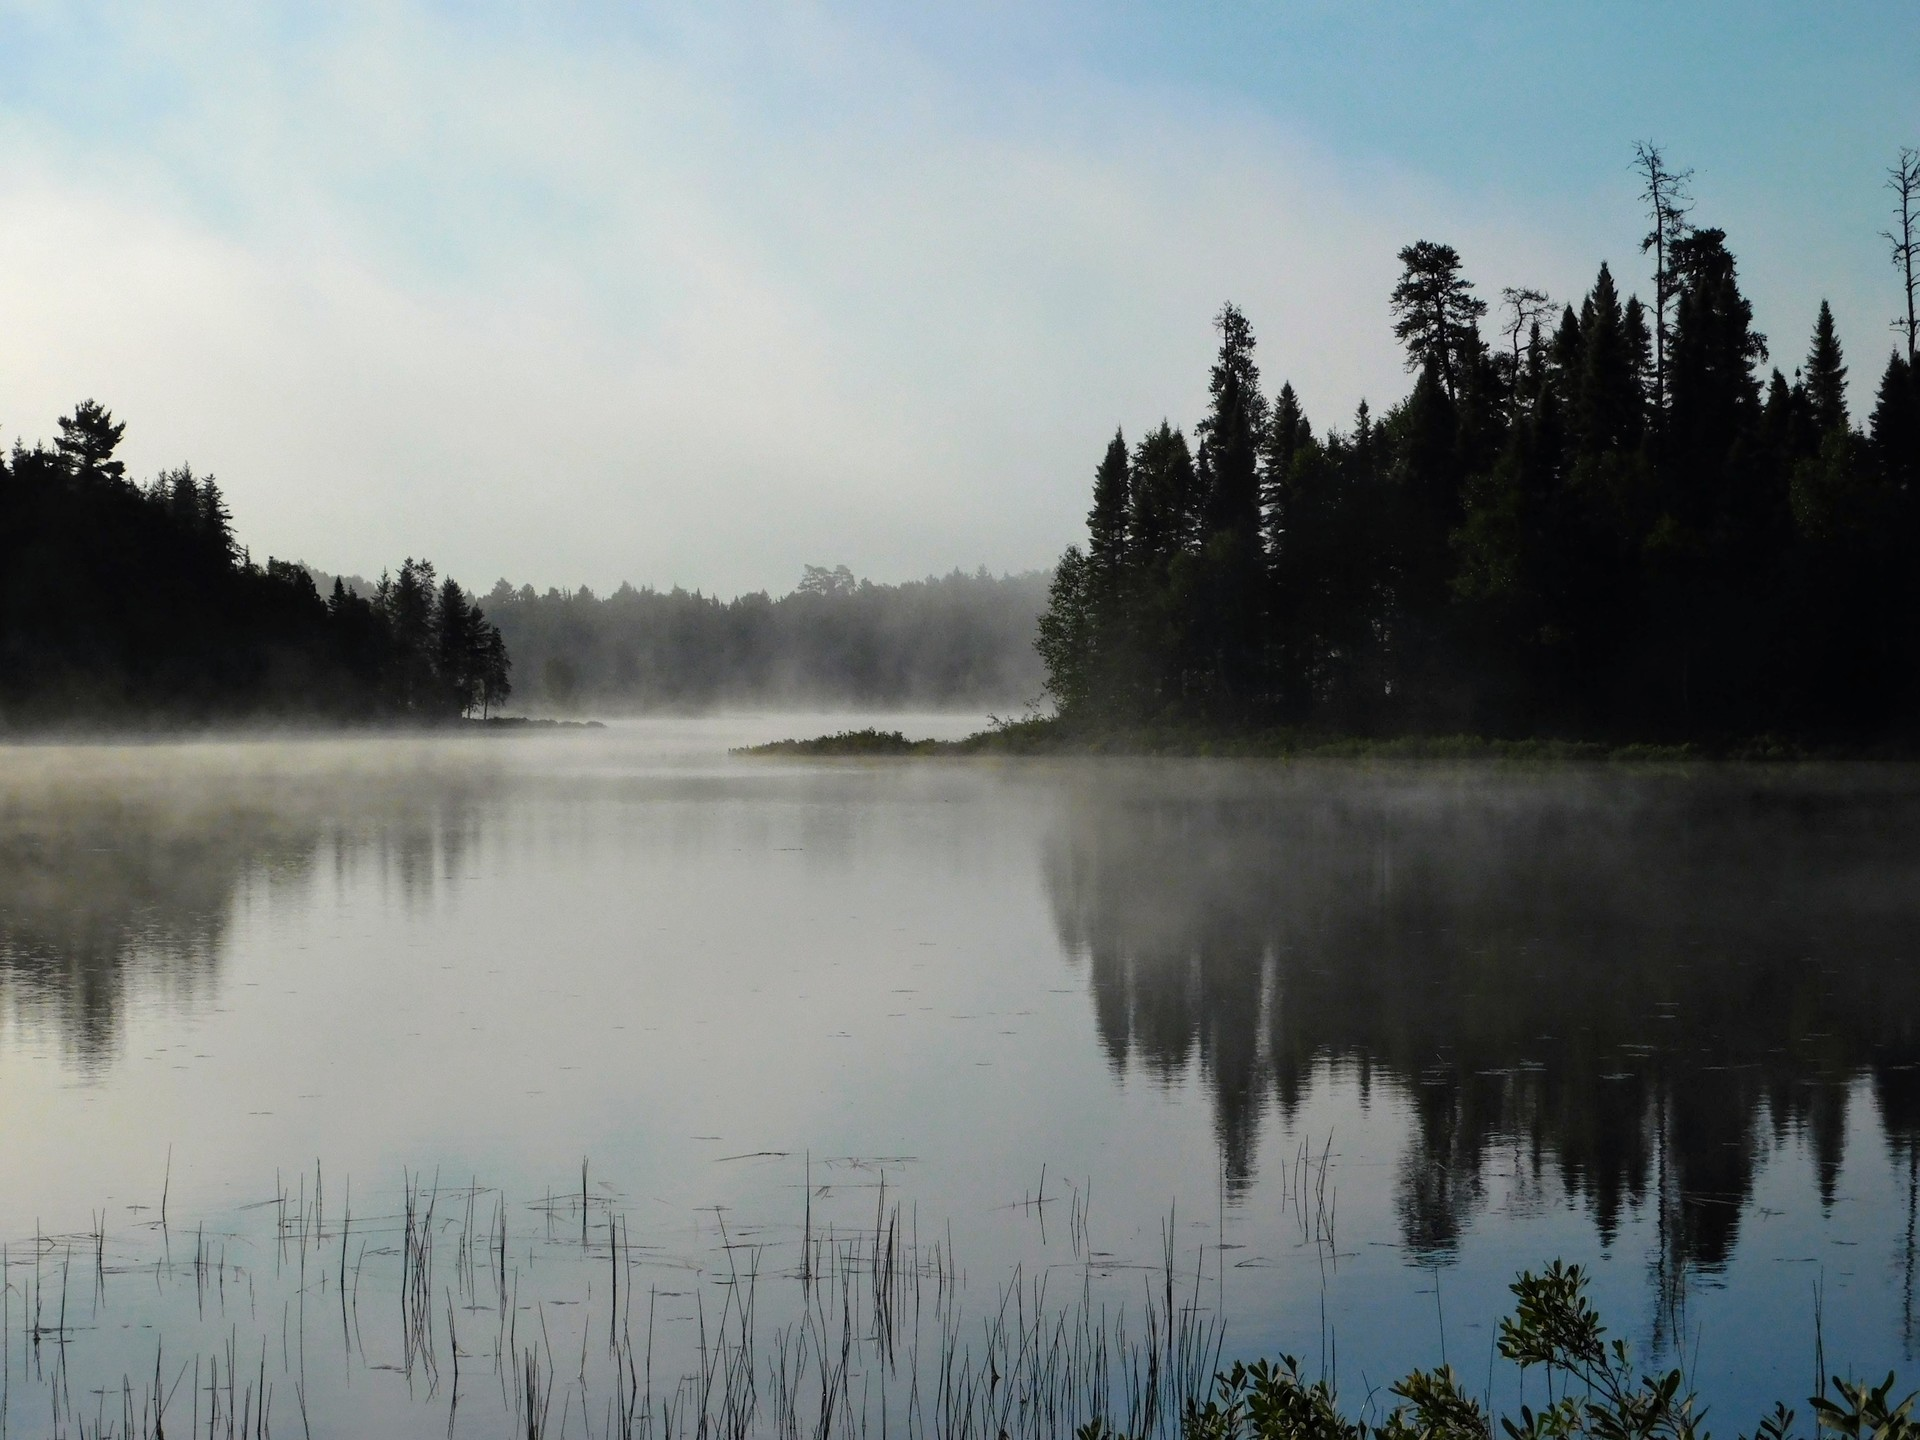 Foggy Morning | rick.cognyl.fournier, daylight, evergreen, lake